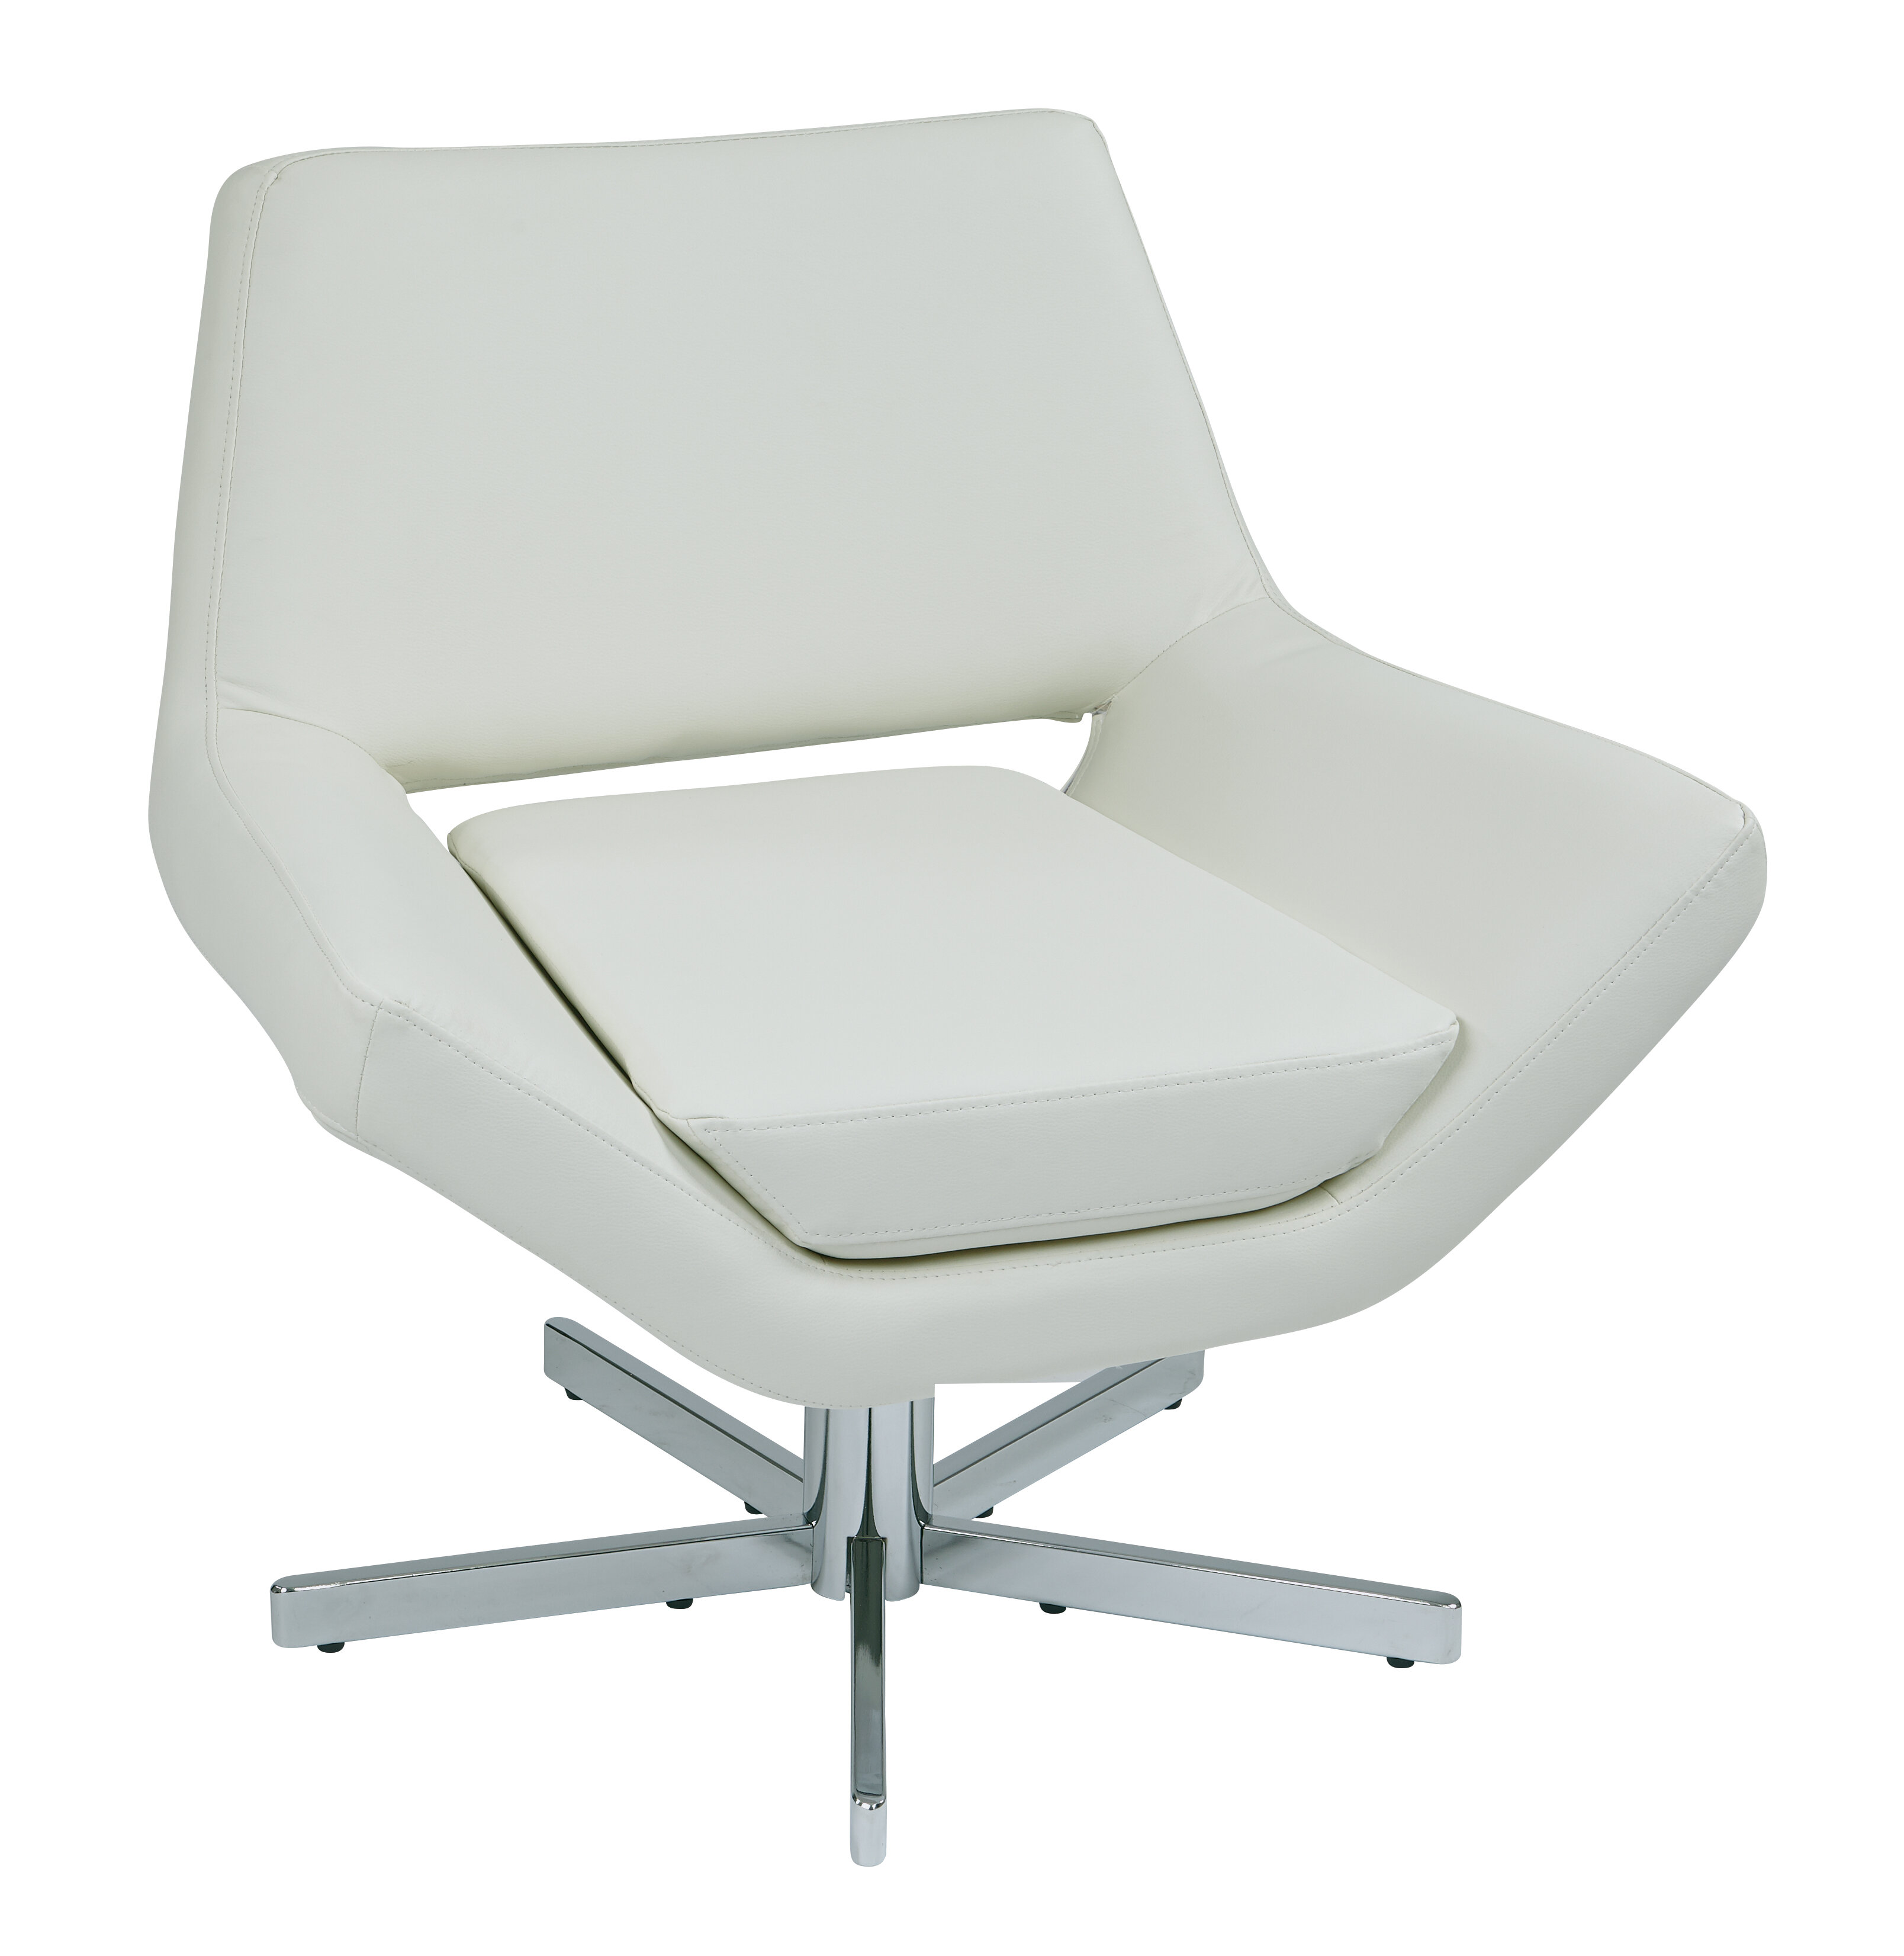 Brilliant Matt Swivel Lounge Chair Gmtry Best Dining Table And Chair Ideas Images Gmtryco